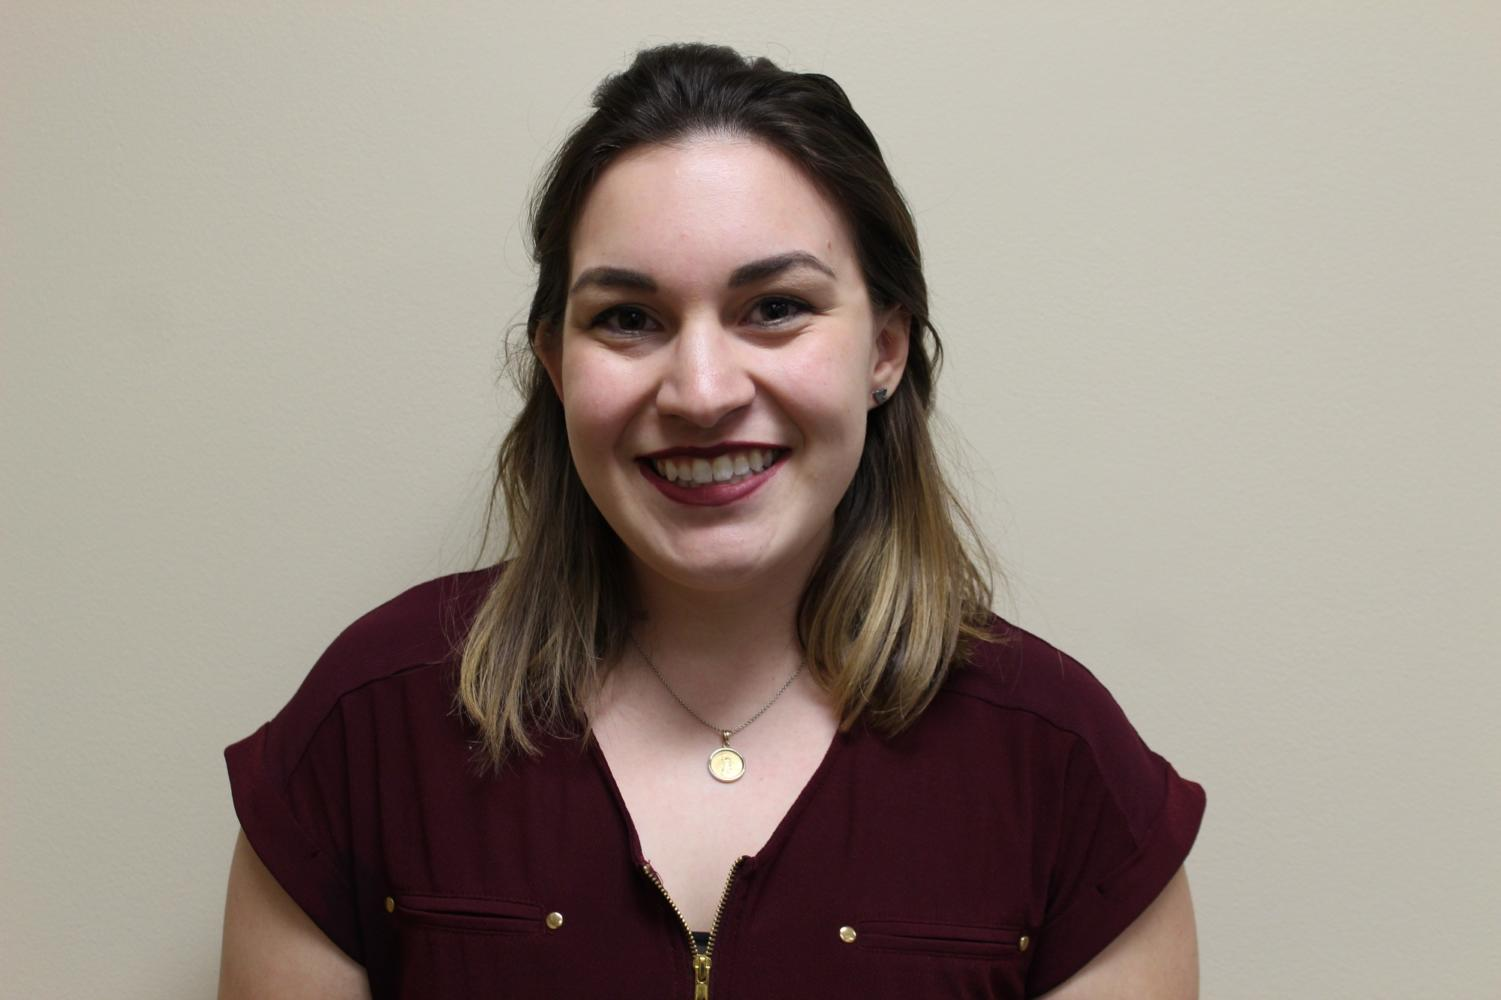 Editorial: Rebekah Vensel is the right choice for SGA president